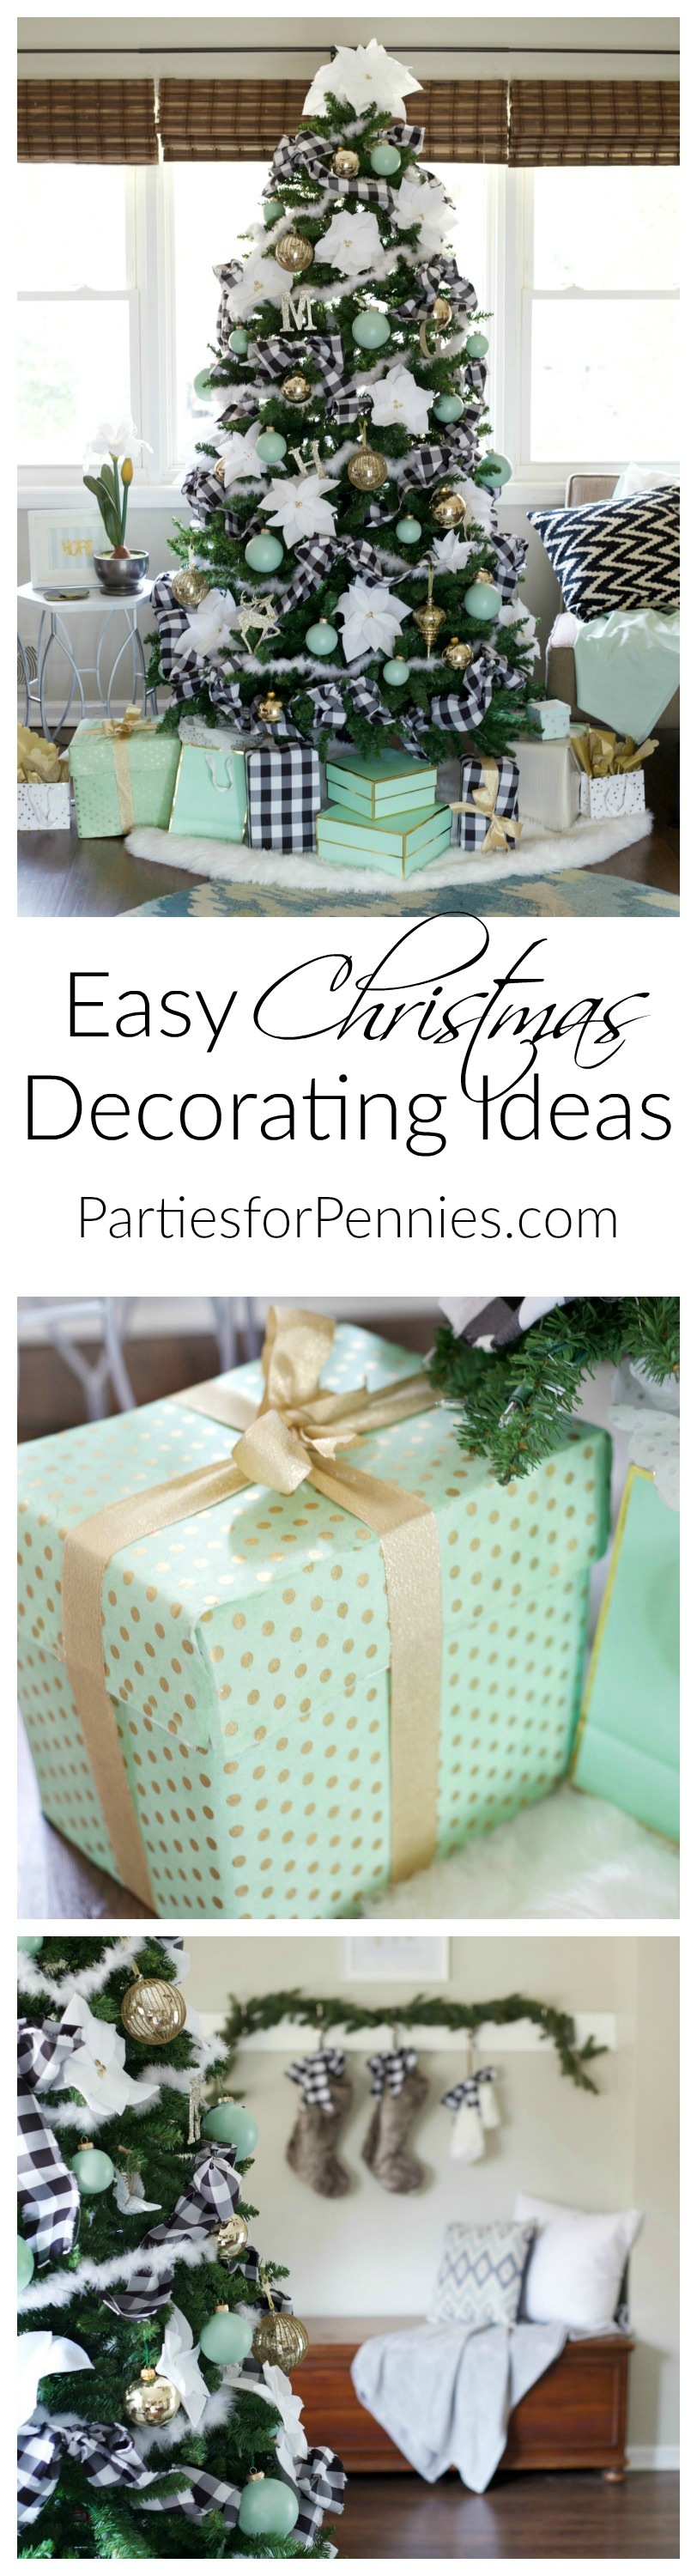 Easy Christmas Decorating Ideas | Budget Friendly